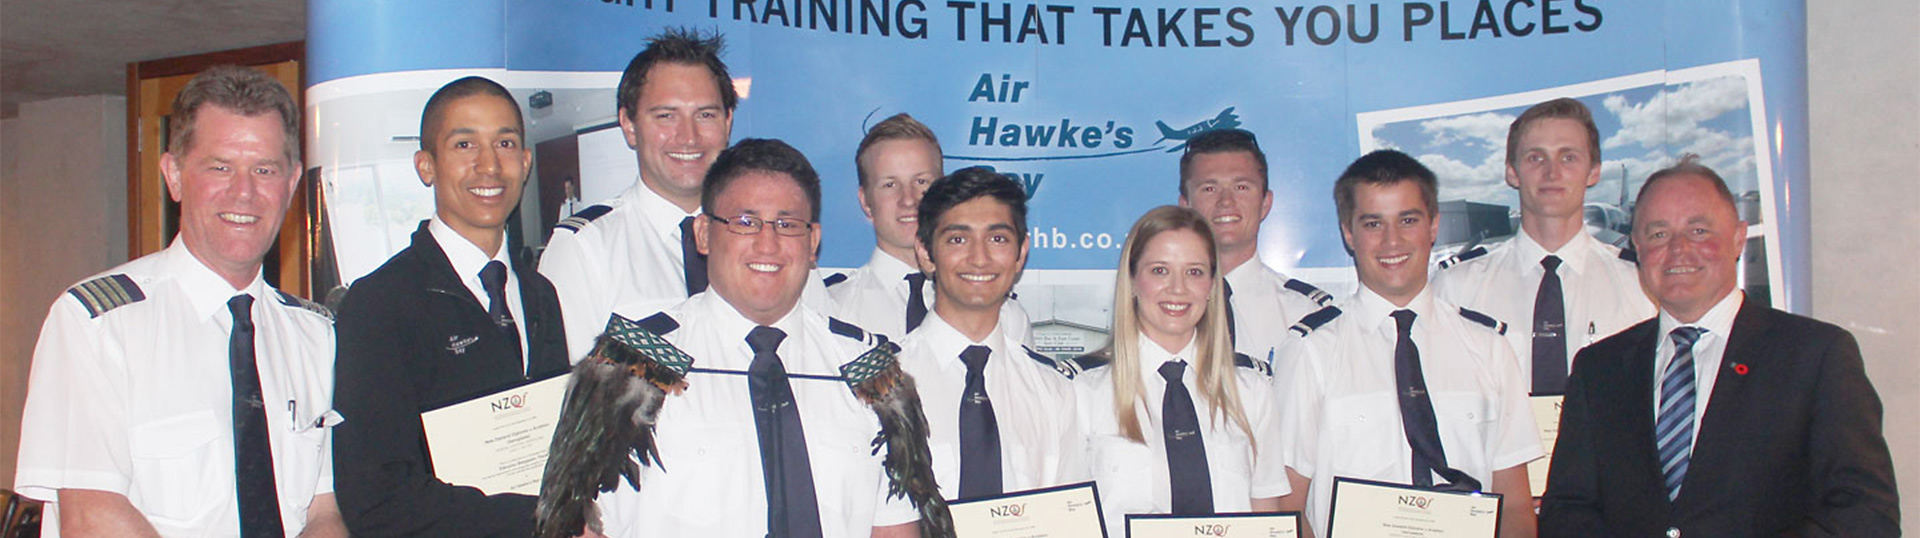 Air Hawkes Bay Graduation